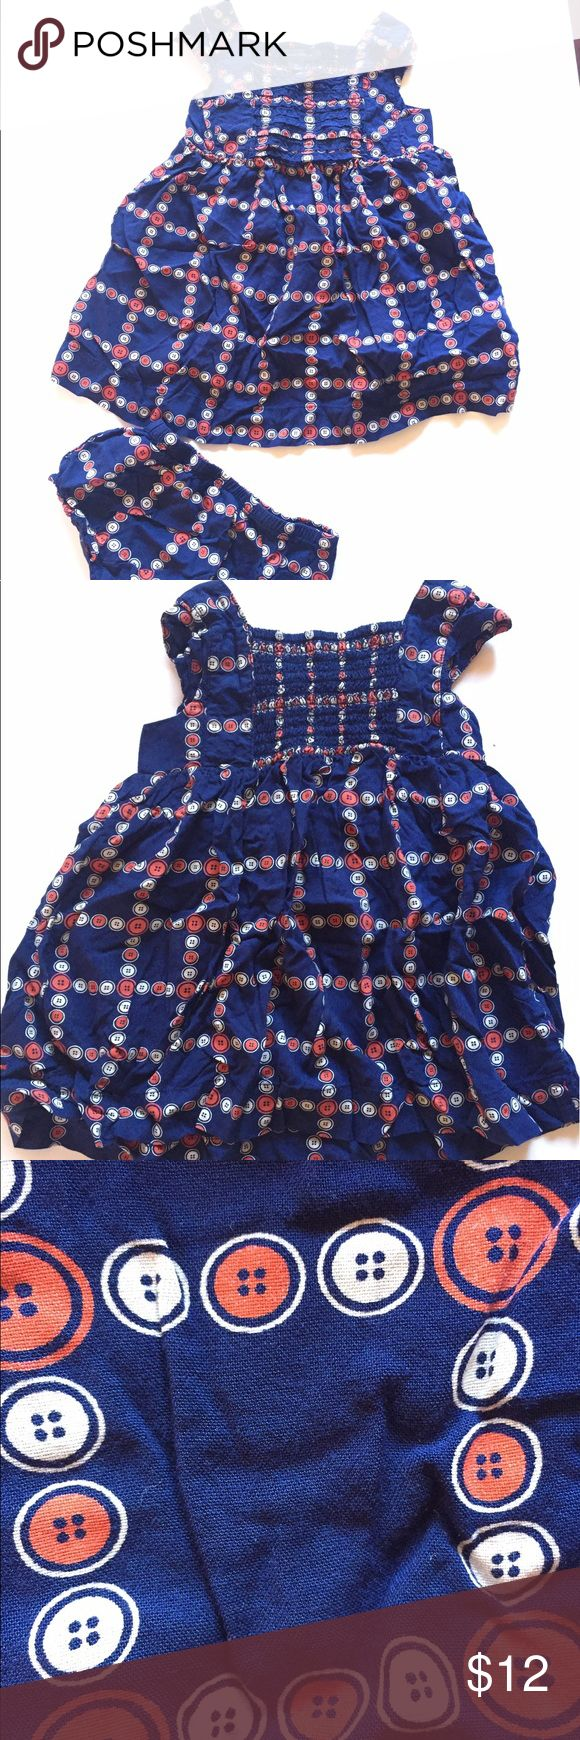 Summer outfit for toddlers Tommy Hilfiger two piece outfit for two-year-olds GAP Matching Sets